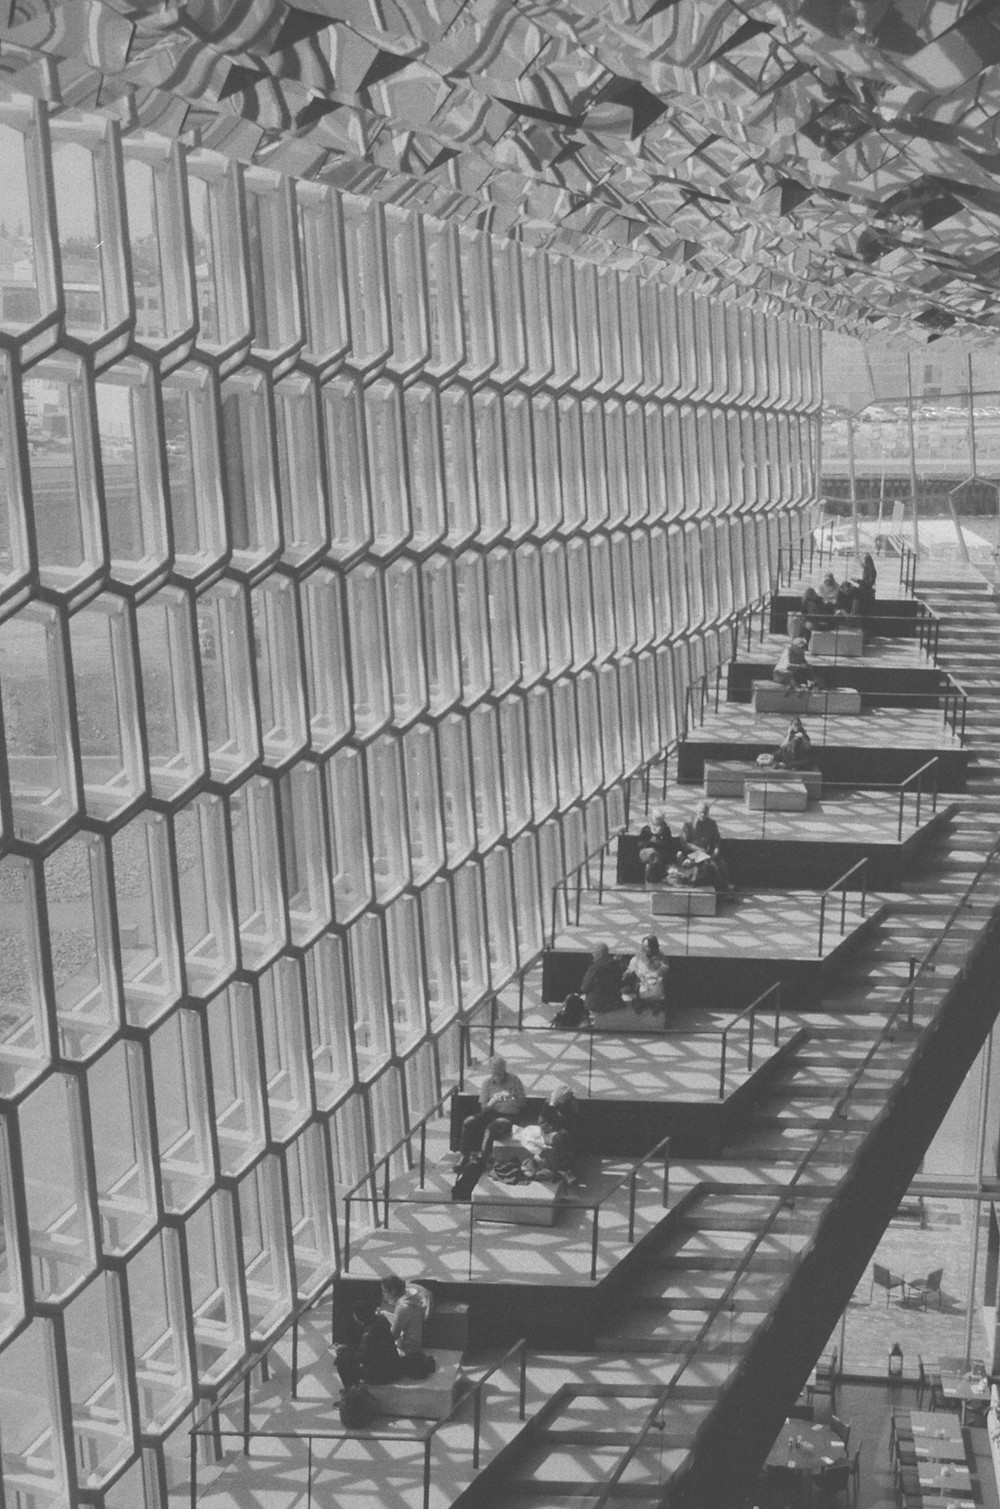 The inside of a building. Steps lead to a series of uncovered resting spaces, which are also set up in the form of steps. They are illuminated by the light coming in through a wall made entirely of glass sections that look reminiscent of a honeycomb. The photograph is in grayscale.